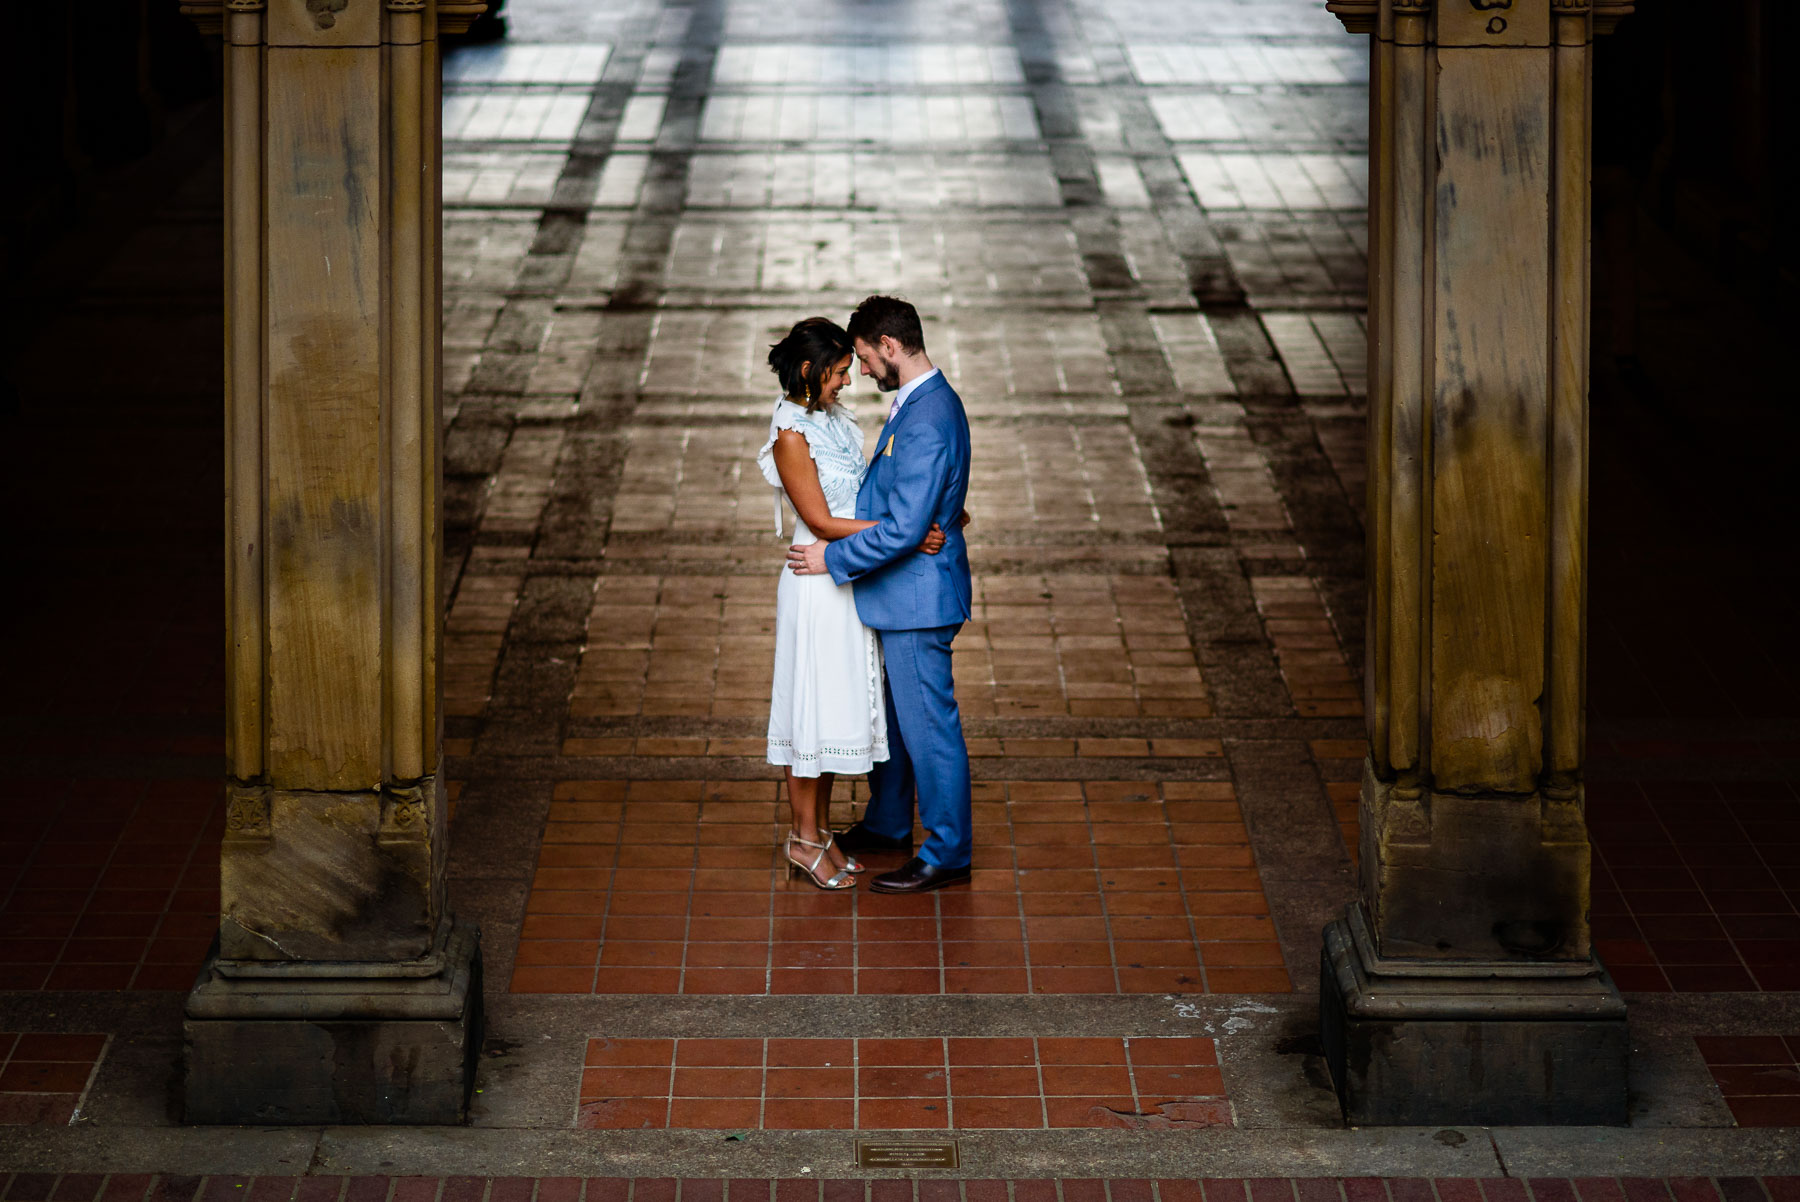 Central Park NYC Wedding portrait bethesda terrace